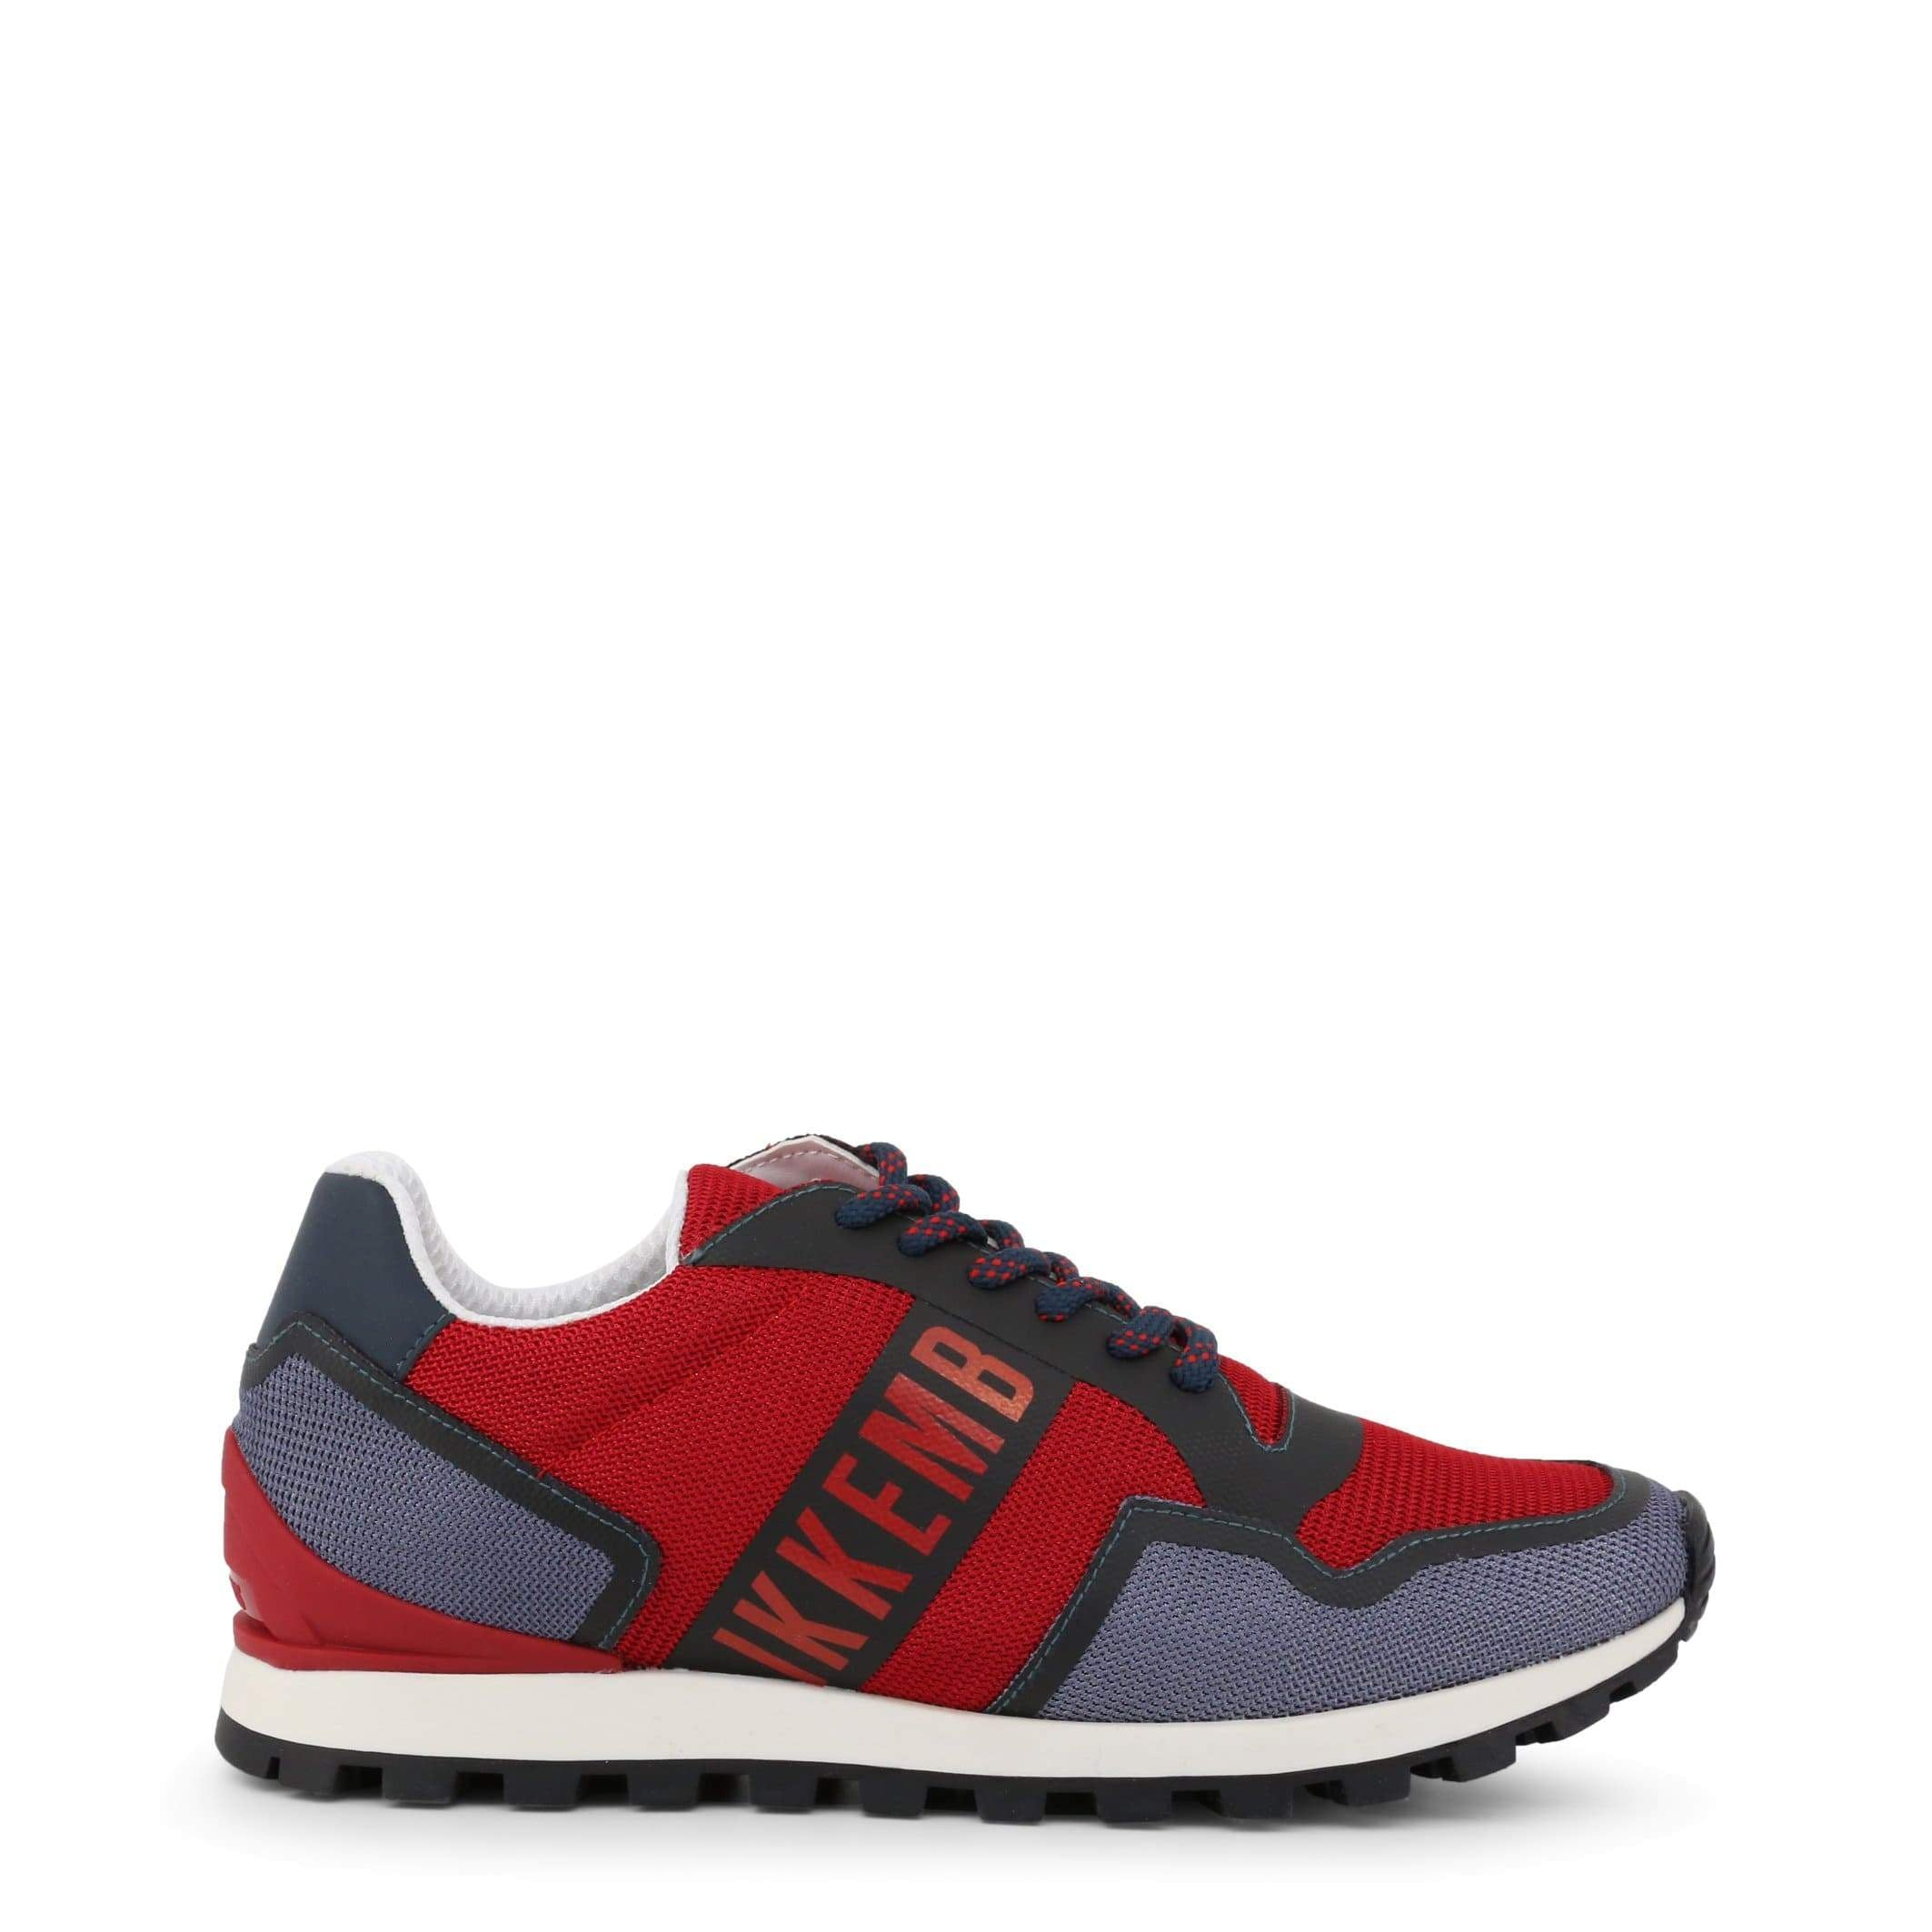 Bikkembergs Shoes Sneakers red / EU 40 Bikkembergs - FEND-ER_2084